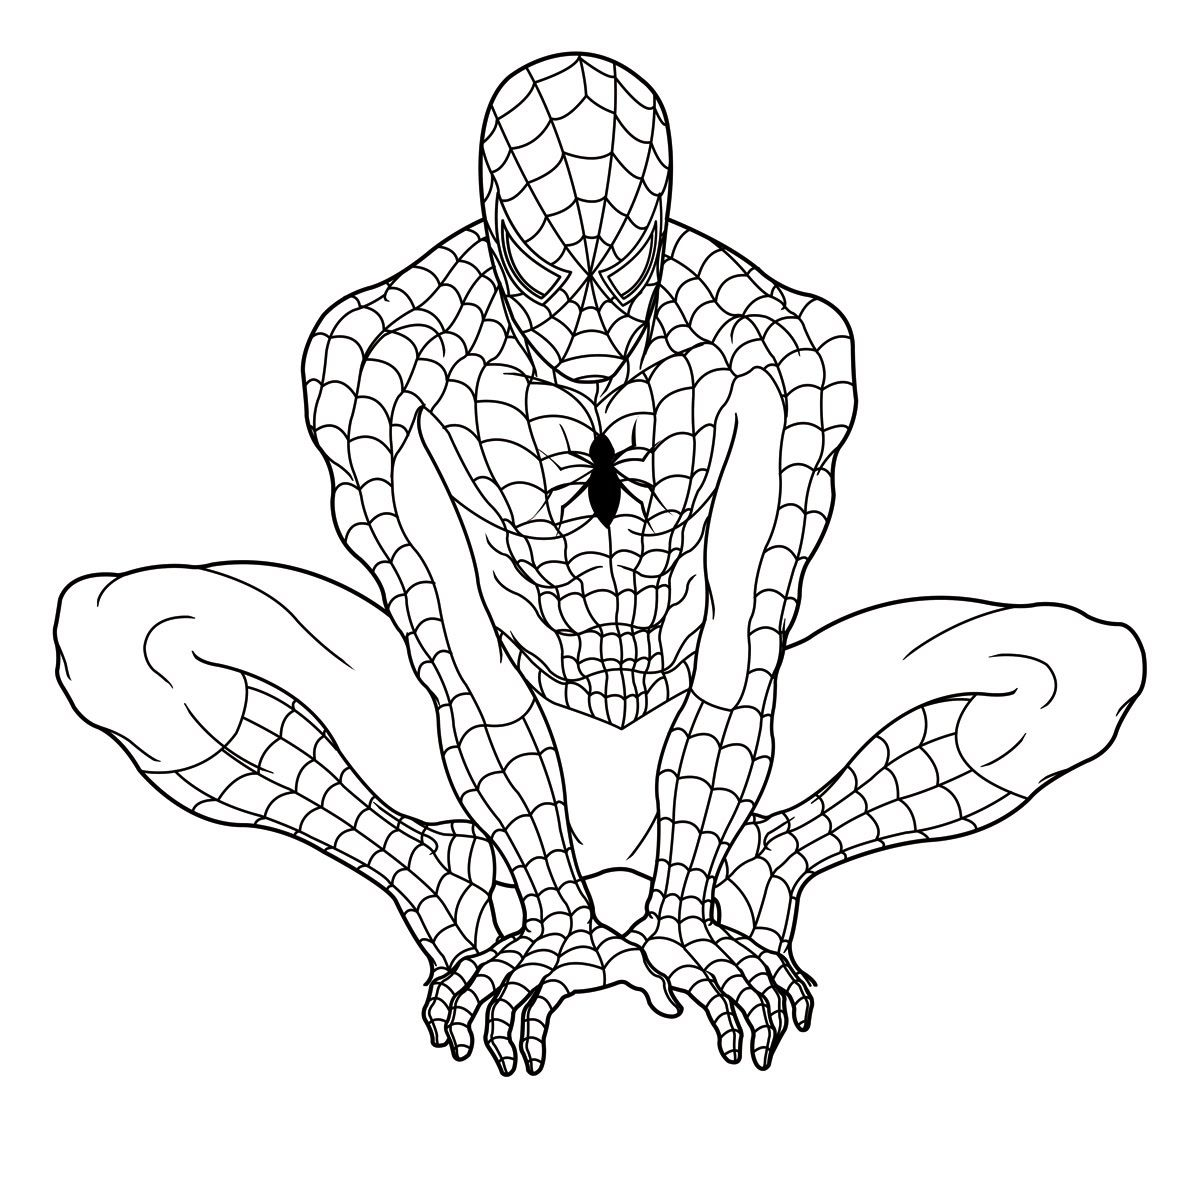 Spiderman Coloring Pages - Free Large Images | Zenaida